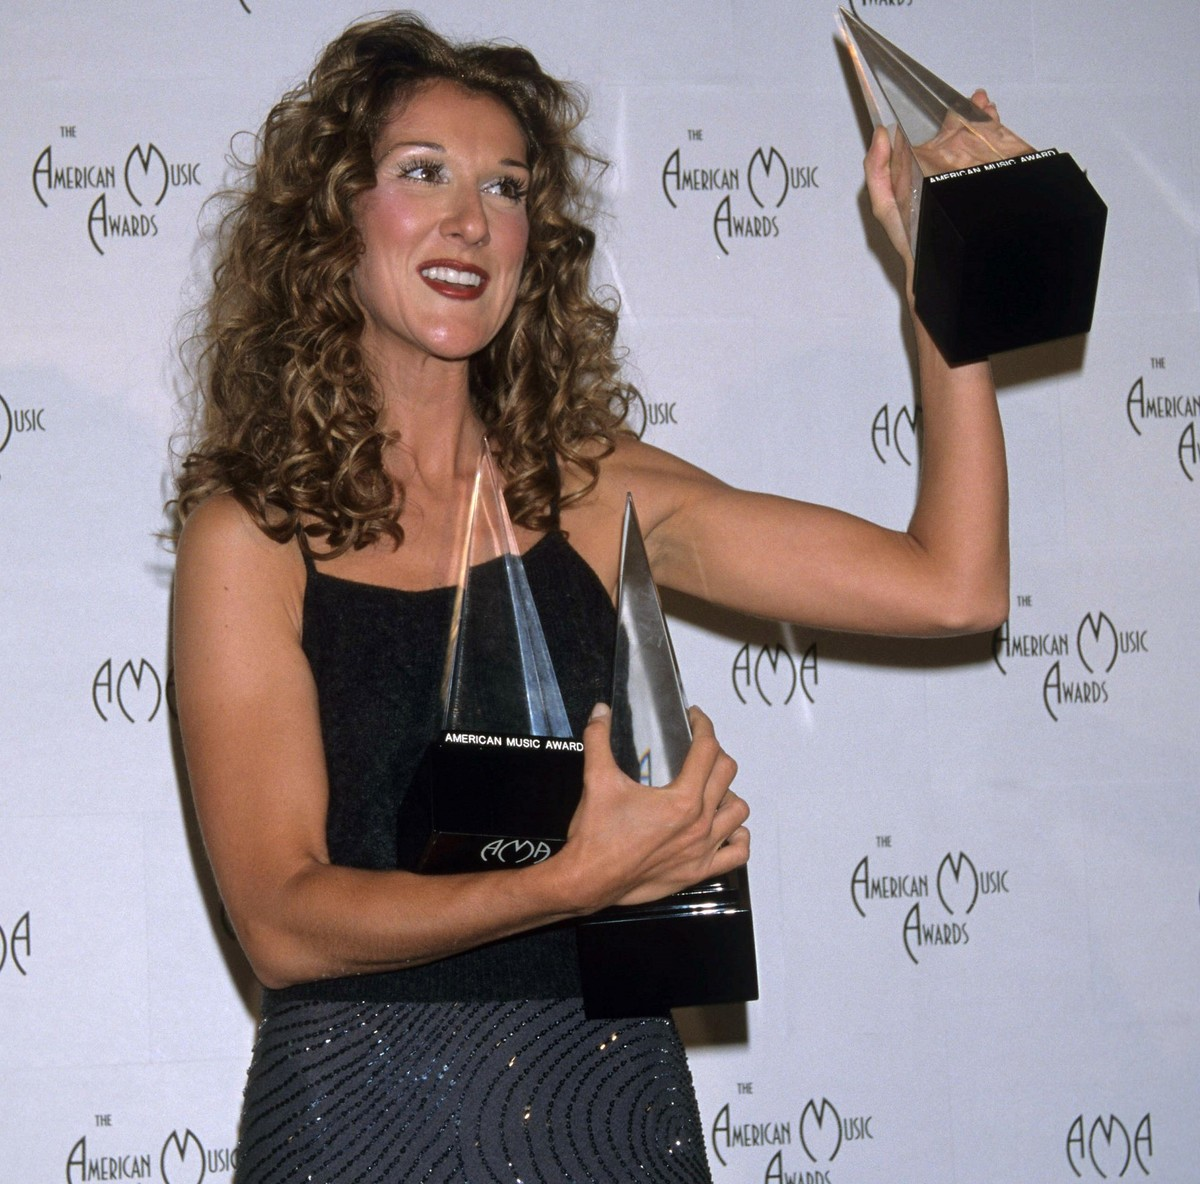 Celine Dion holds three AMAs.